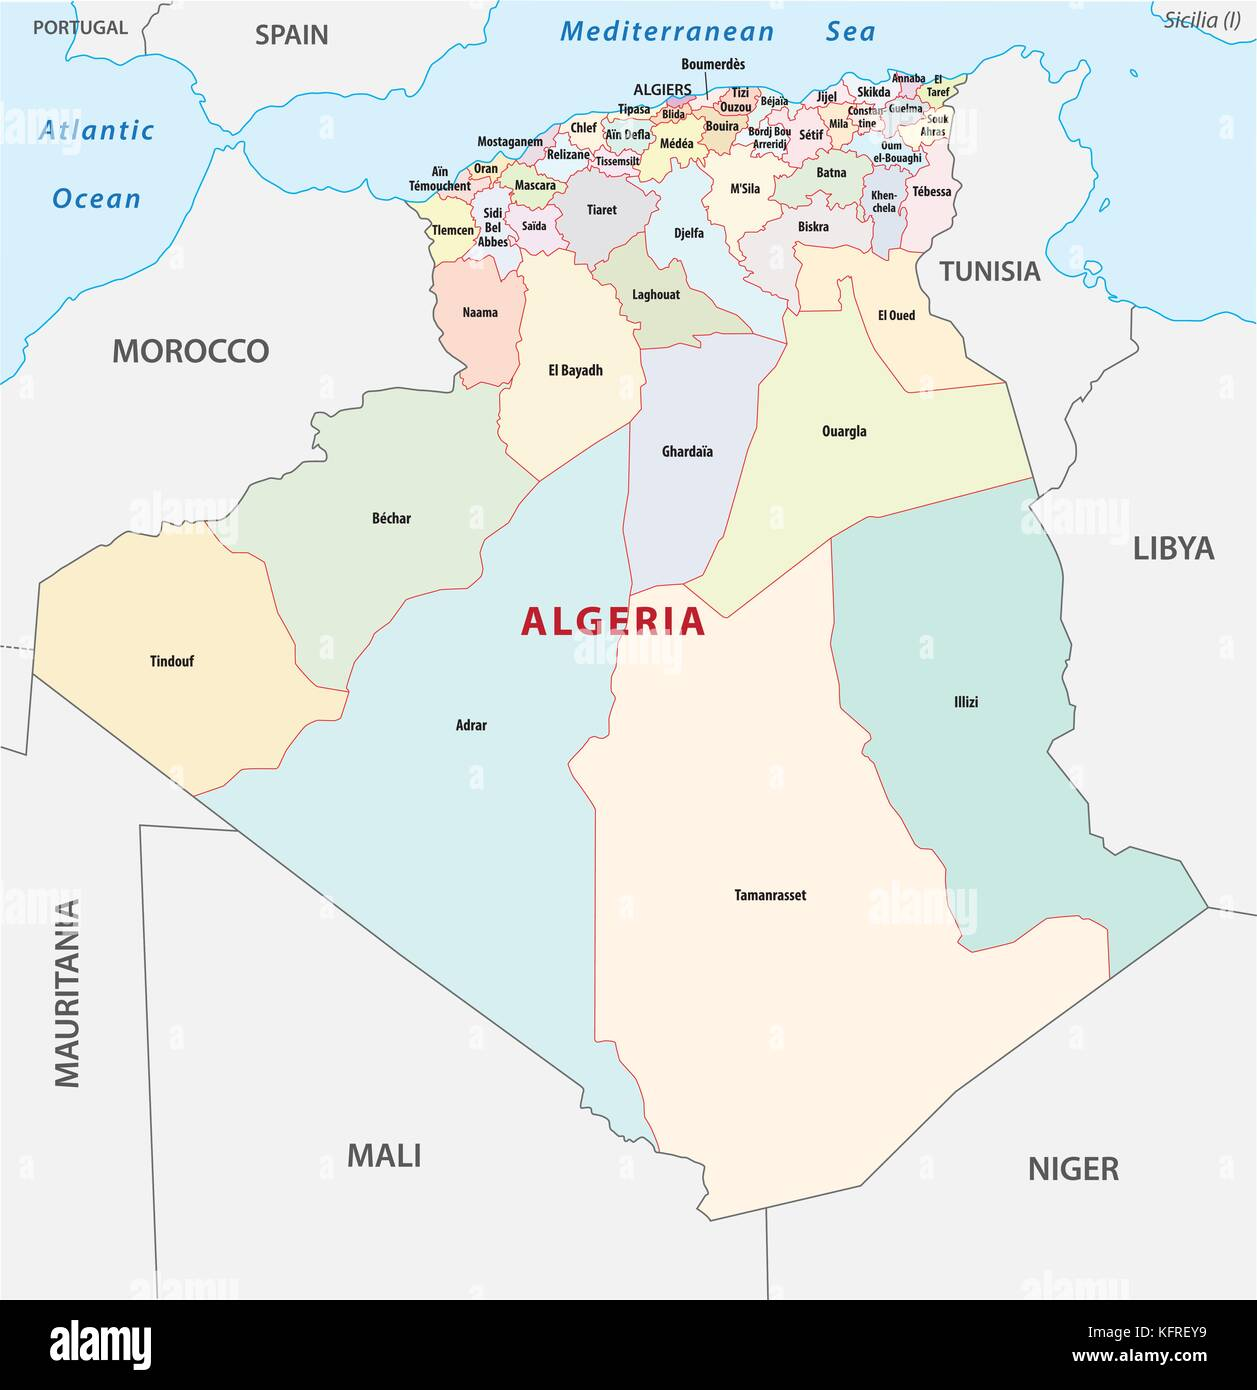 Algeria Map Stock Photos Algeria Map Stock Images Alamy - Political map of algeria